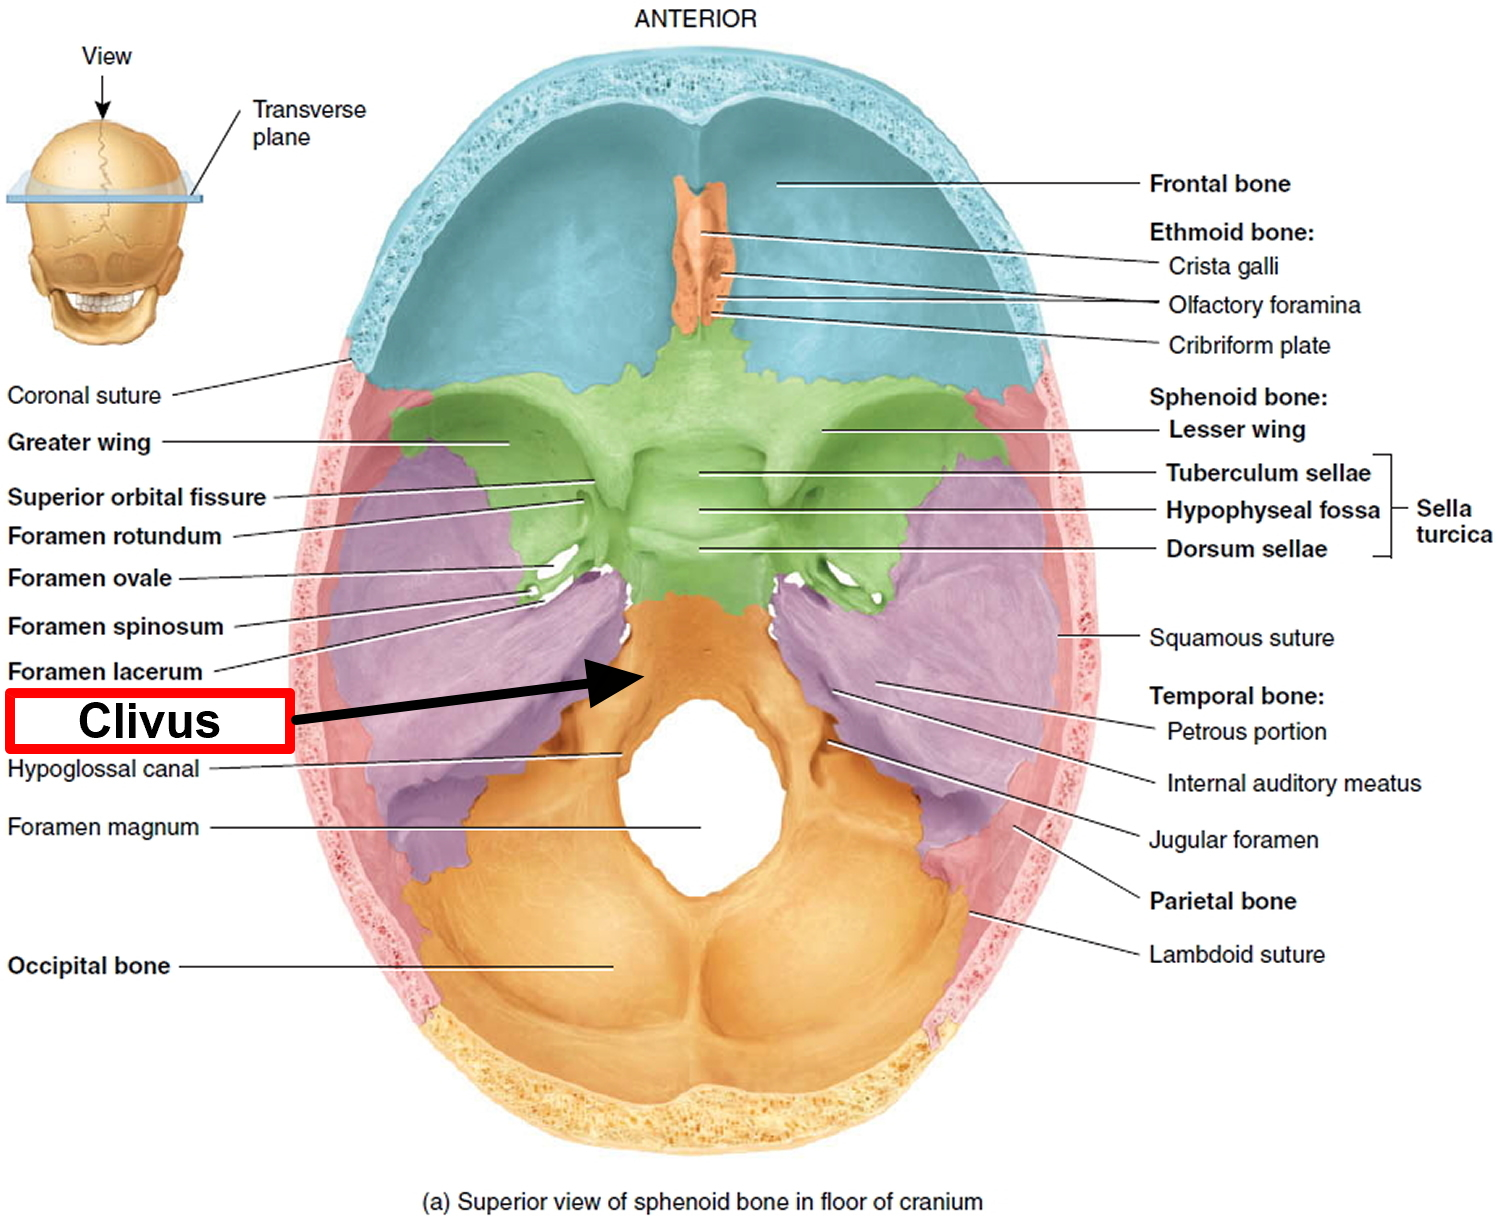 Chordoma Cancer - Causes, Symptoms, Life Expectancy, Treatment